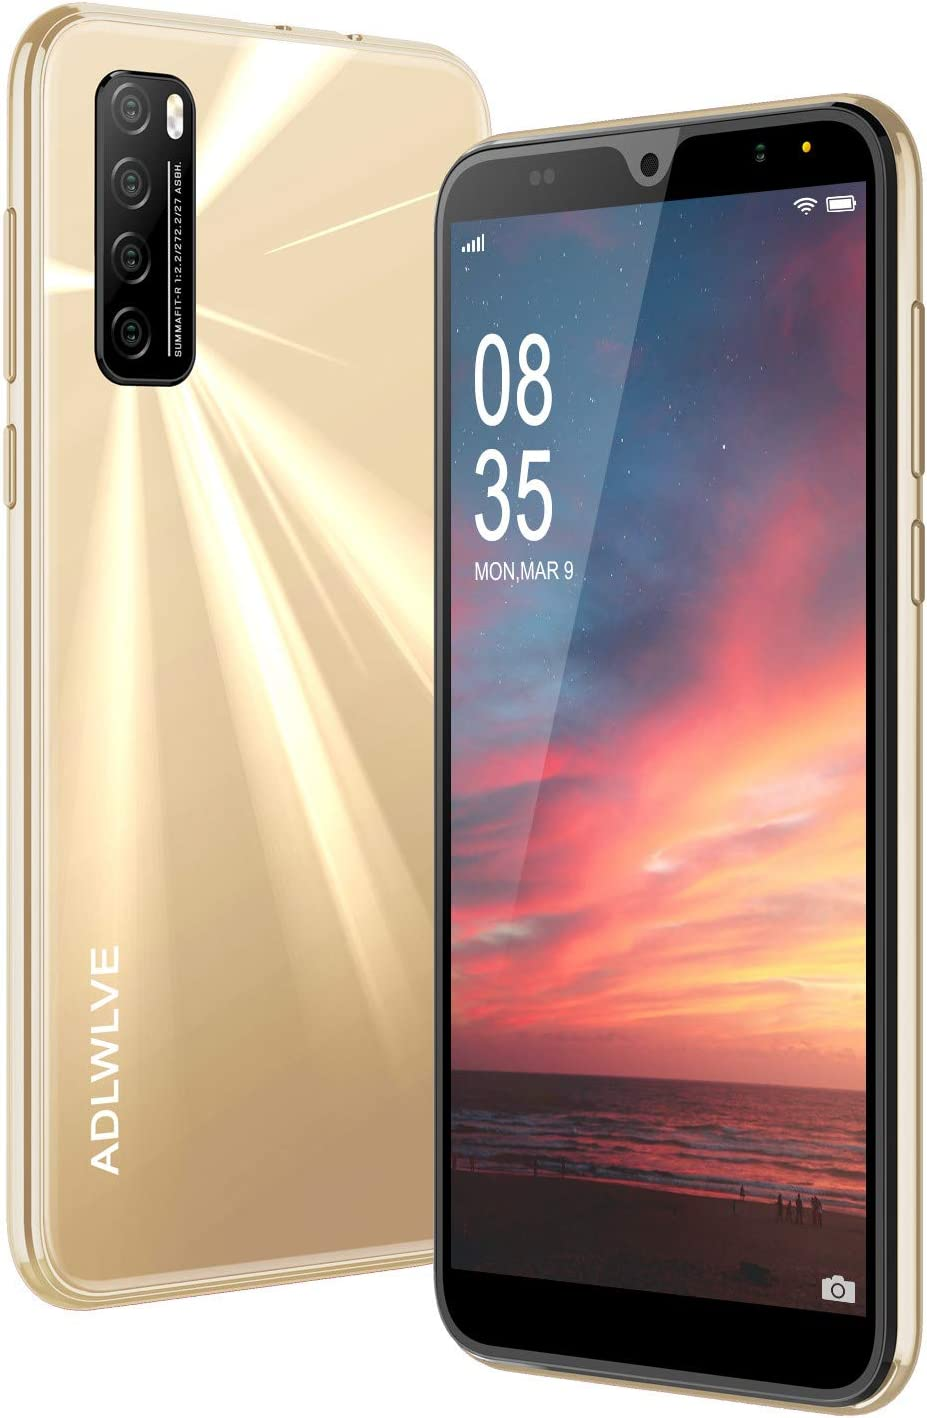 Moviles Libres Baratos 4G, Android 9.0 3GB RAM 32GB ROM Telefono Moviles 6.3